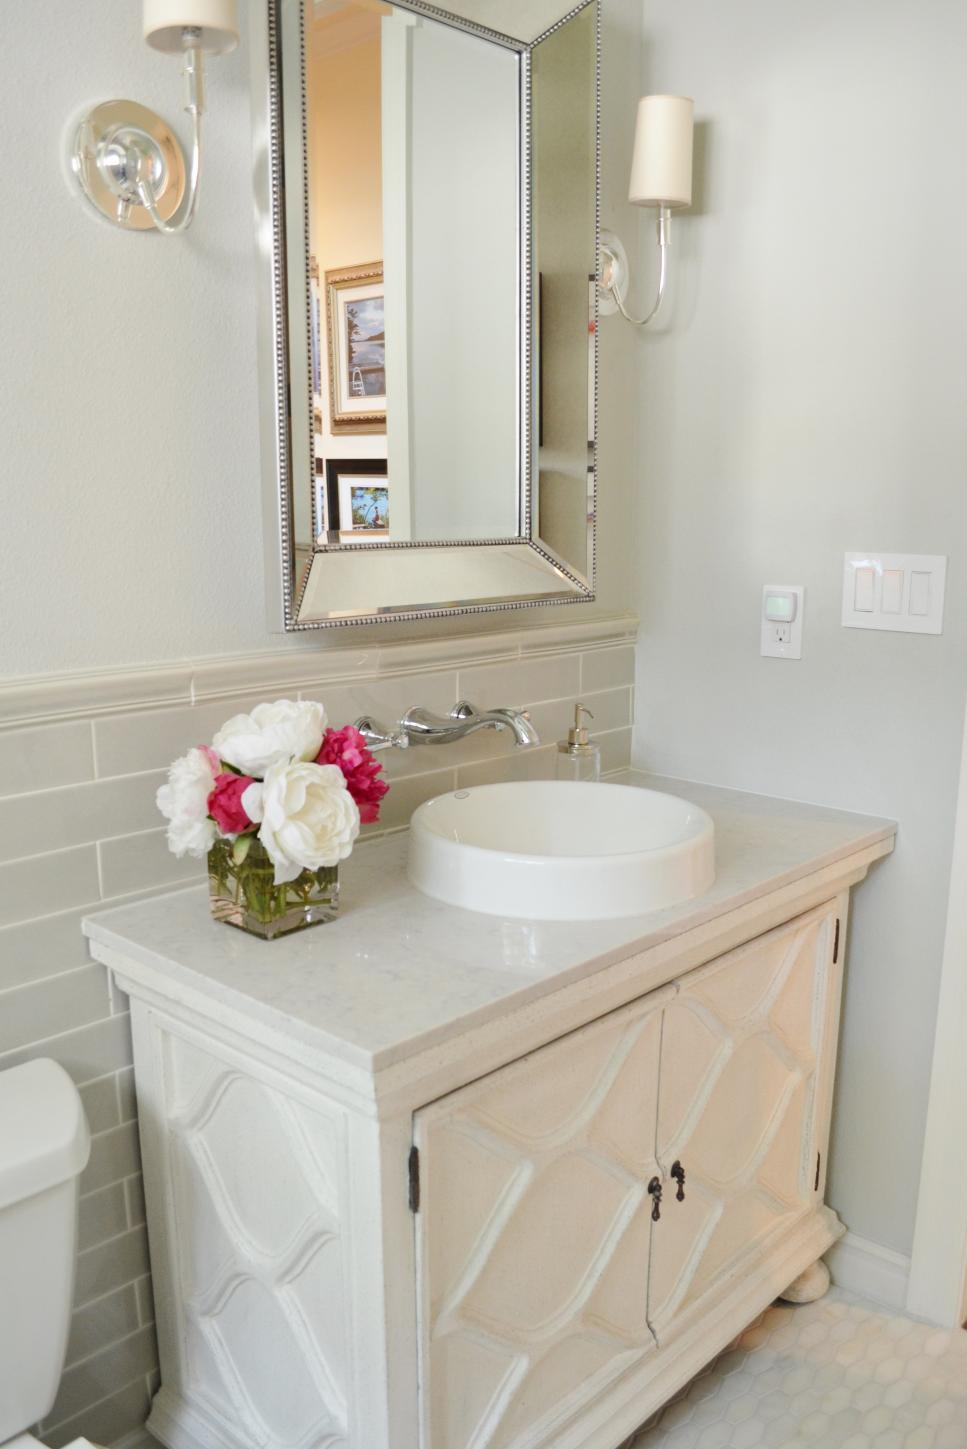 Before and after bathroom remodels on a budget hgtv for Renovating a bathroom ideas